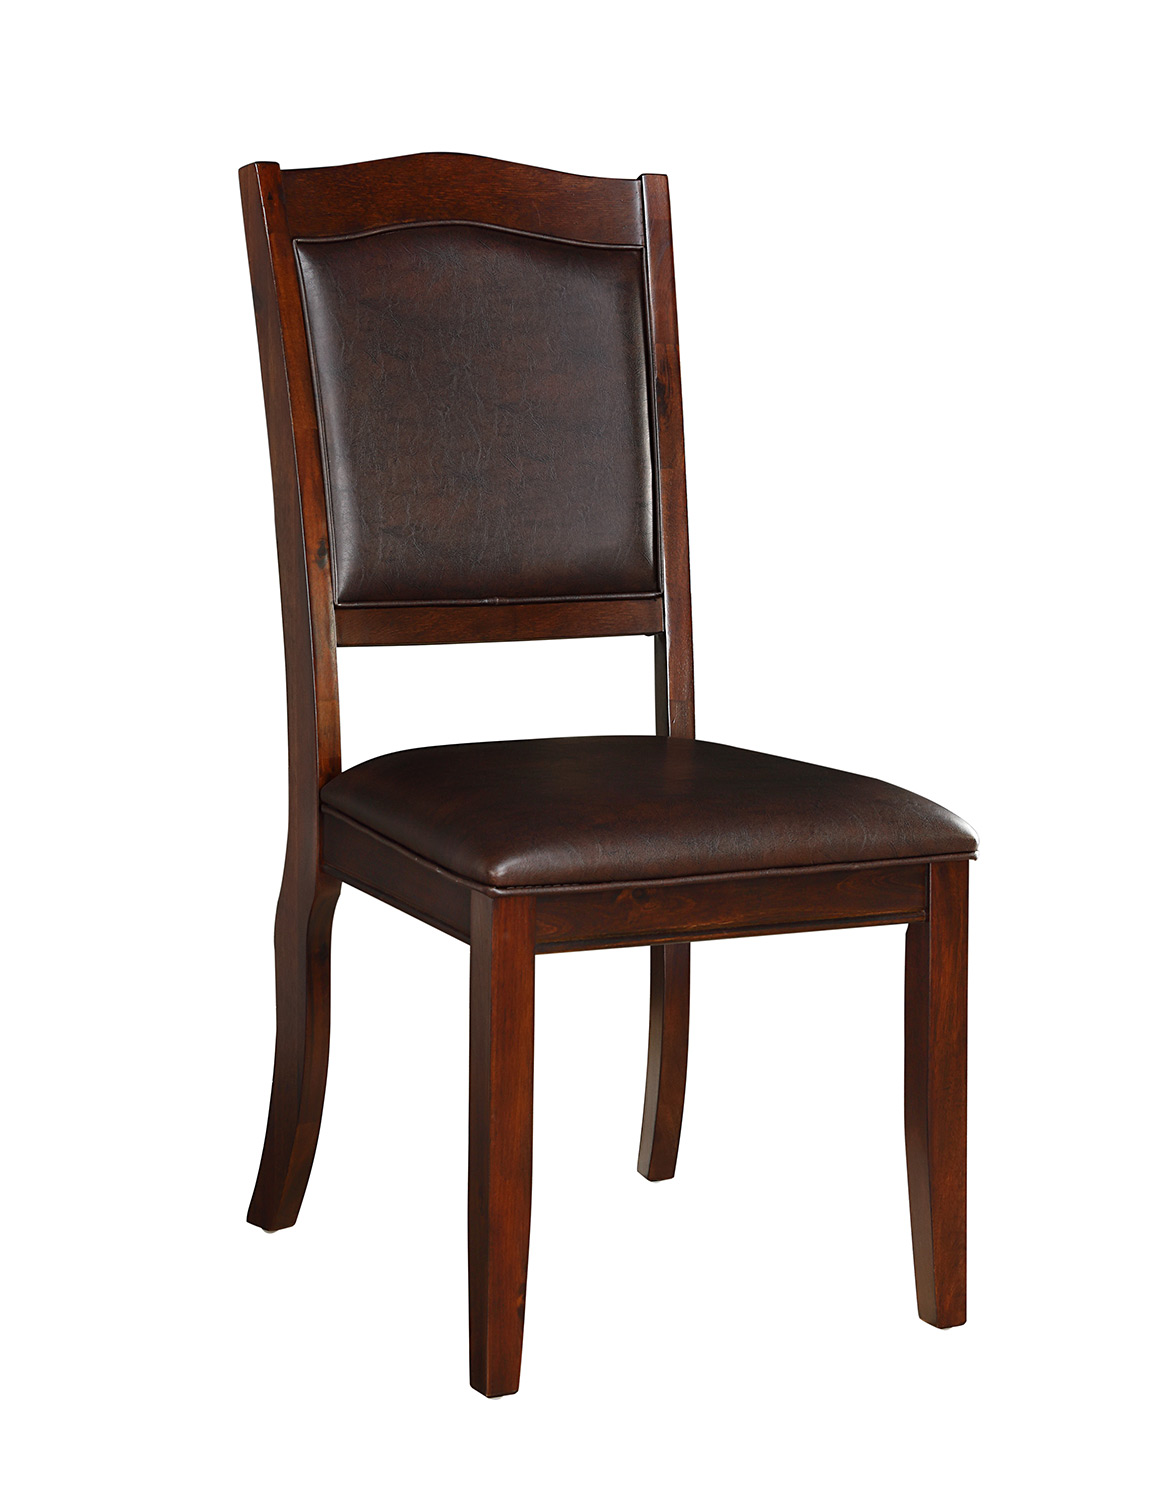 Homelegance Whitby Side Chair - Cherry